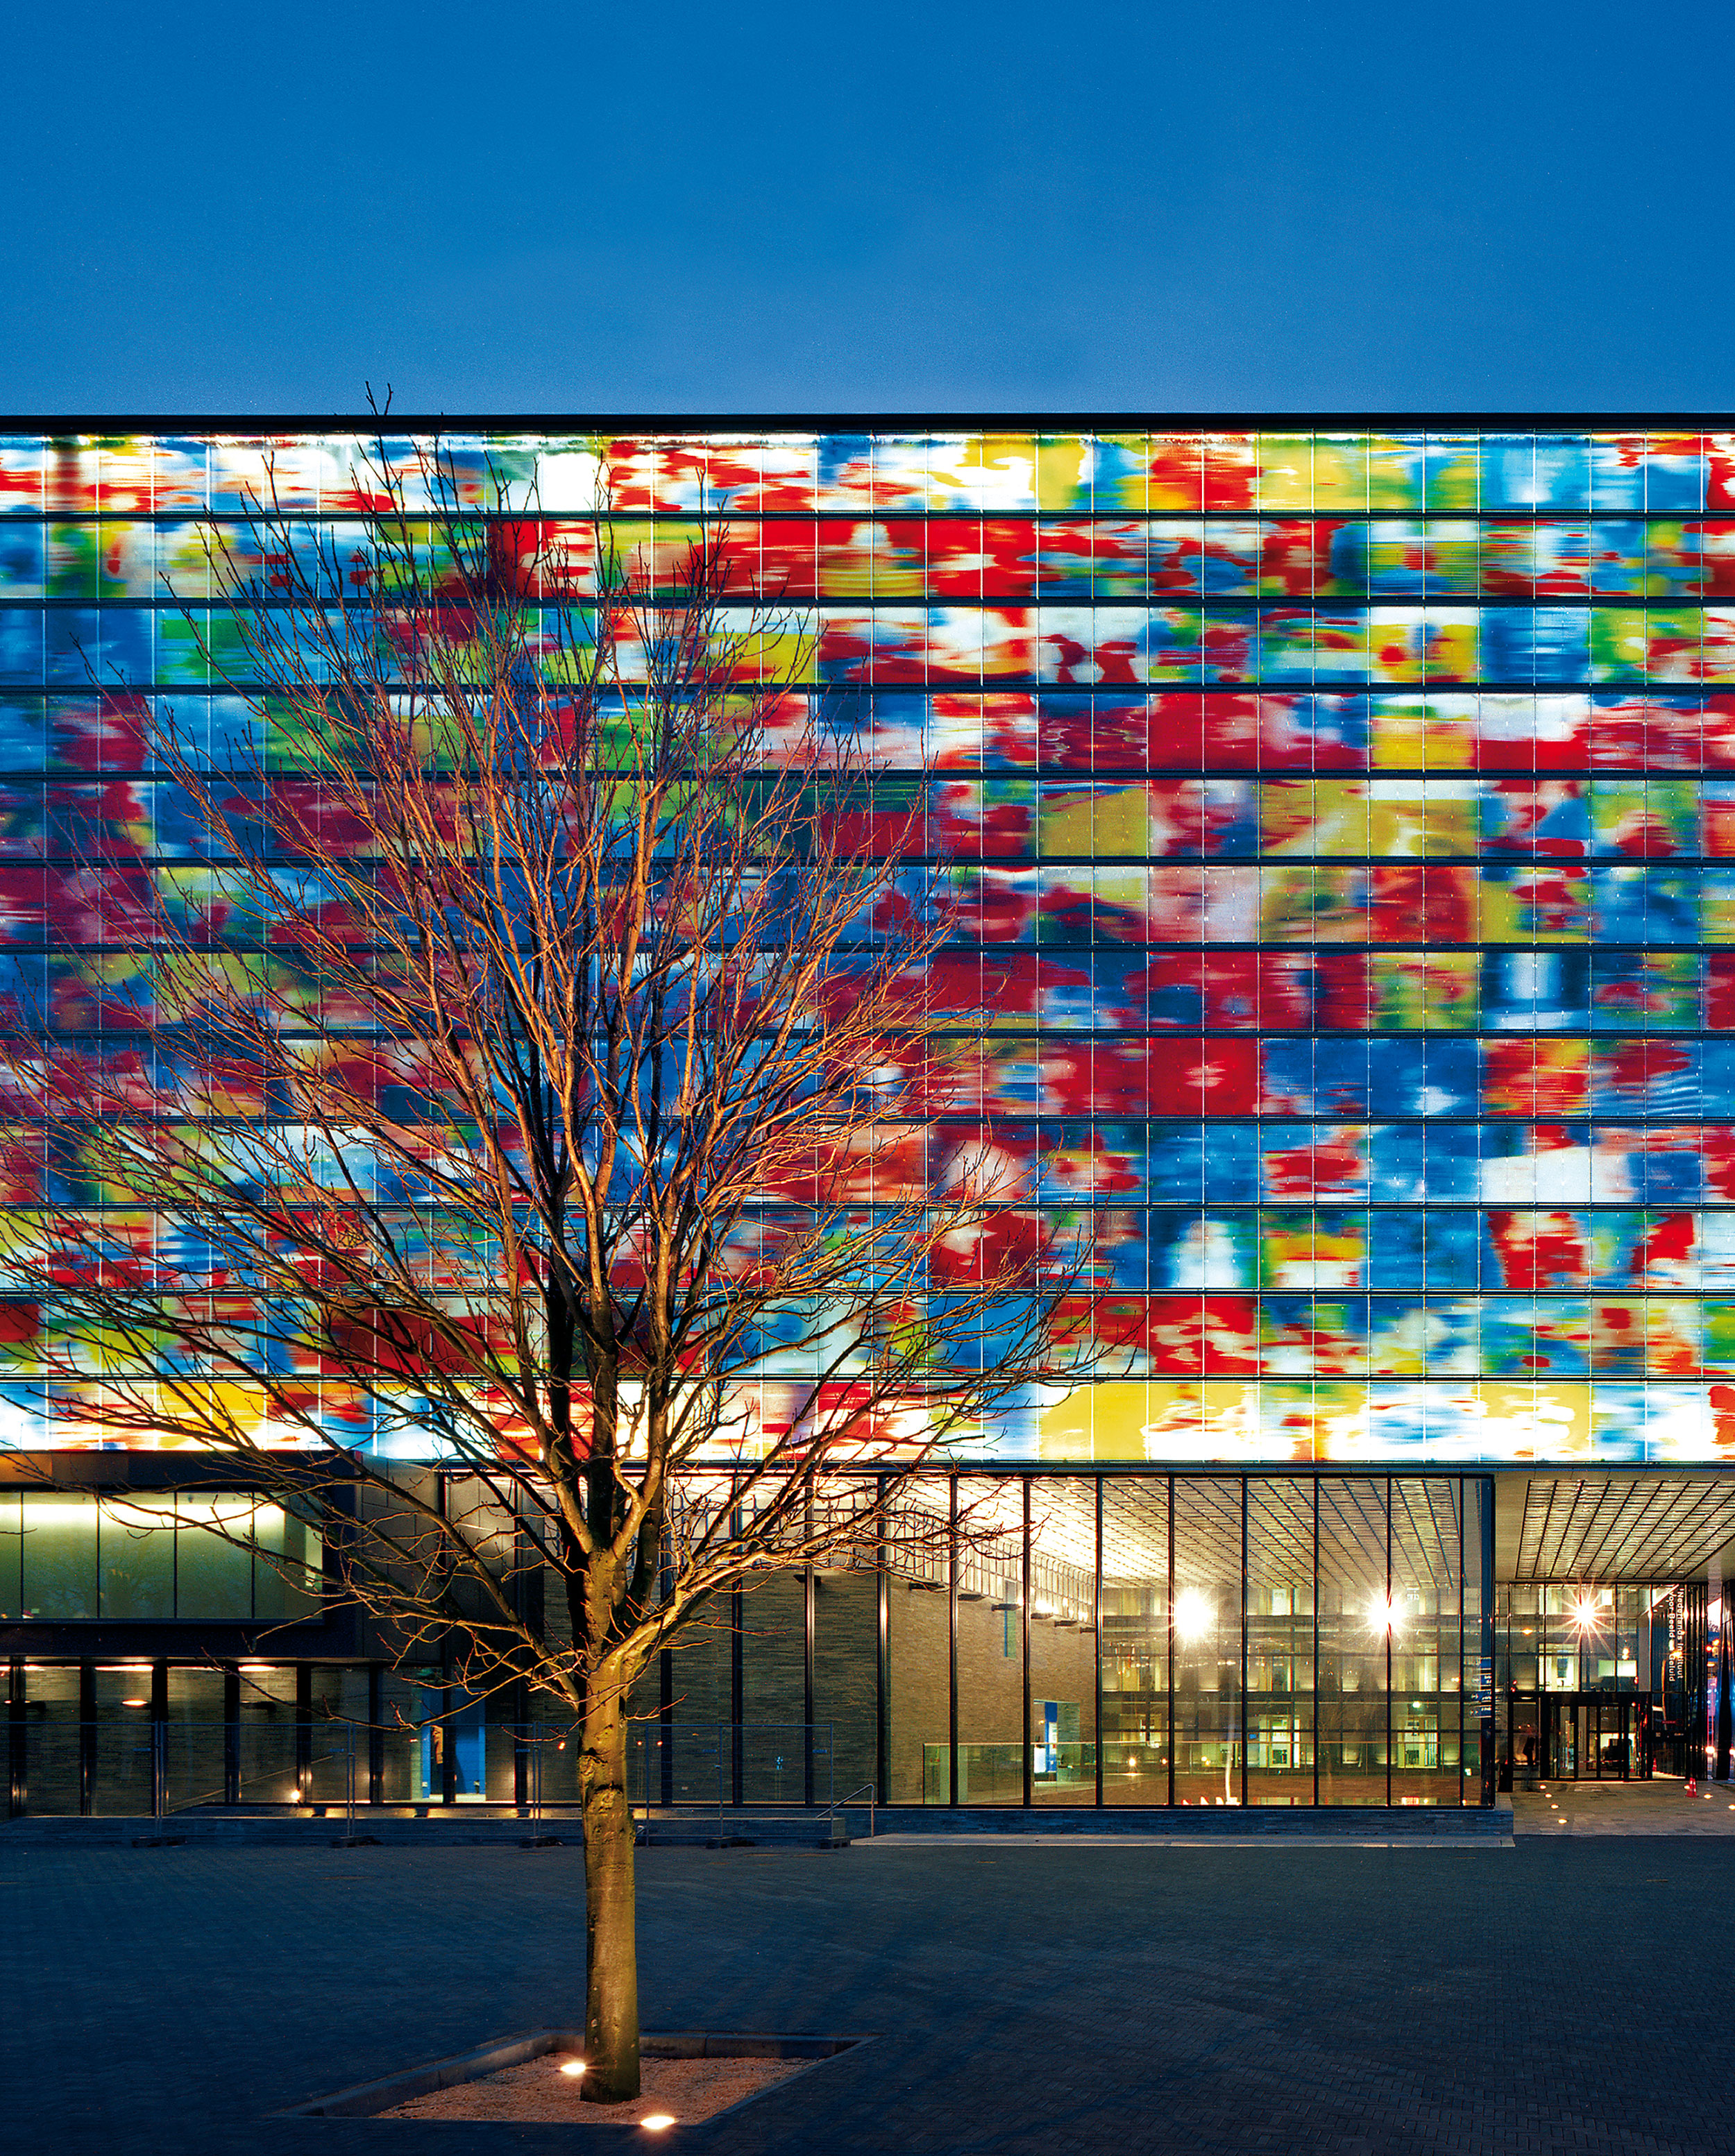 Dutch Institute of Image and Sound, Hilversum